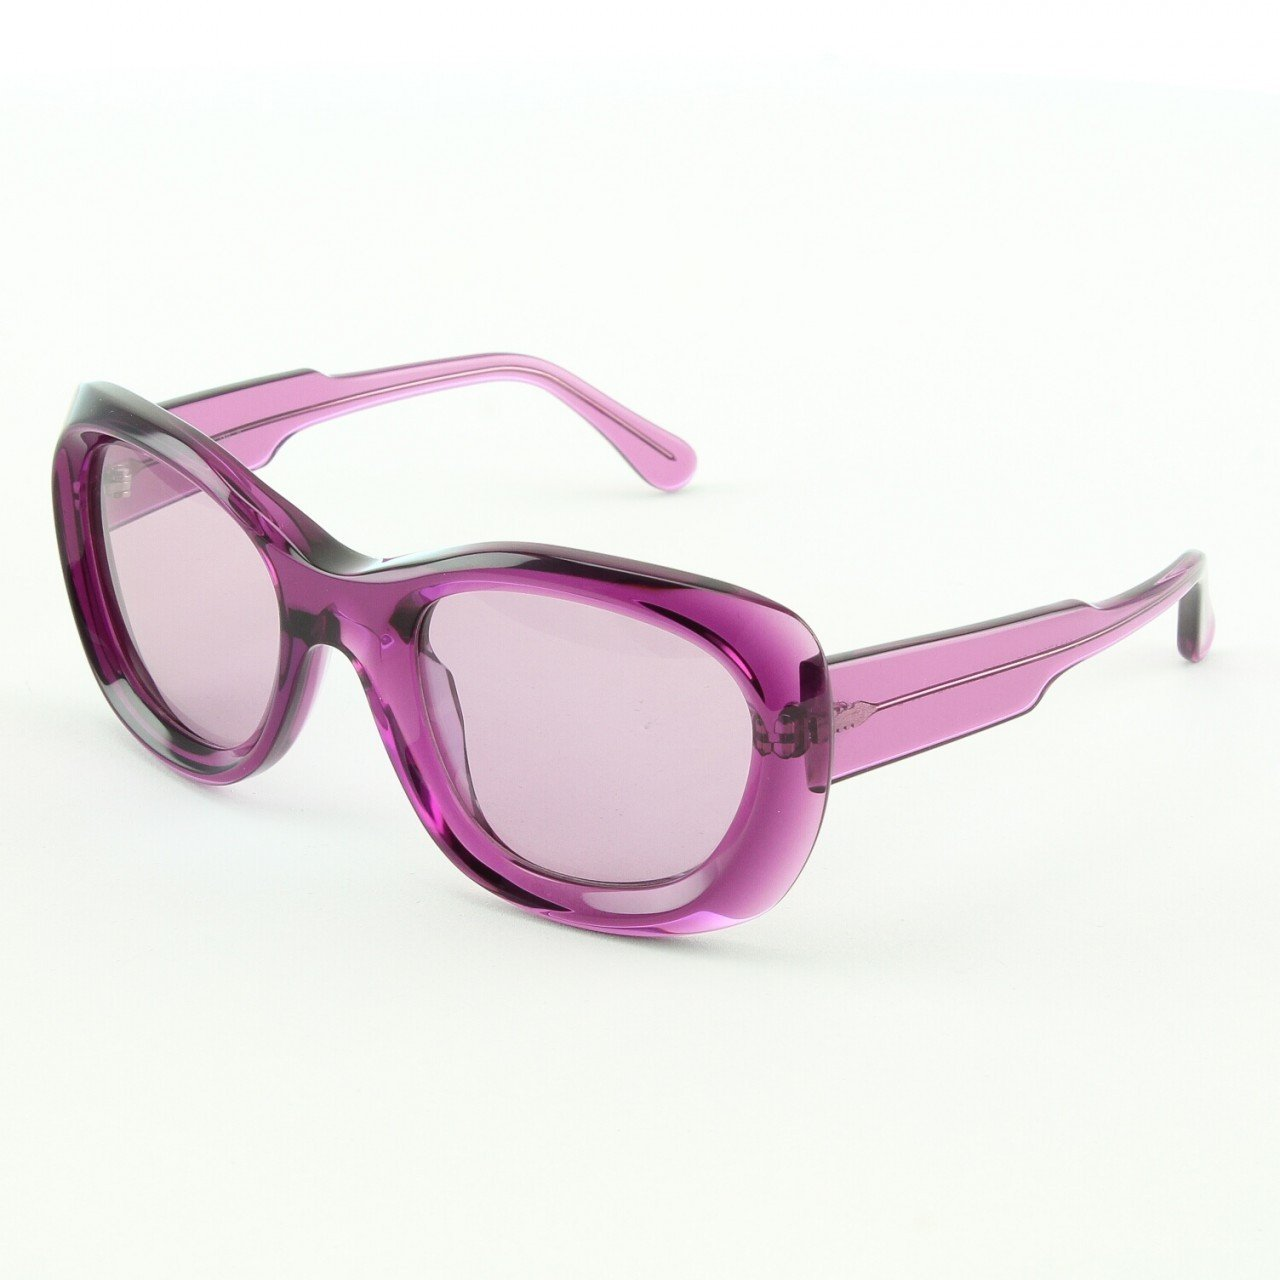 Marni MA178S Sunglasses Col. 05 Translucent Purple with Gray Gradient Lenses